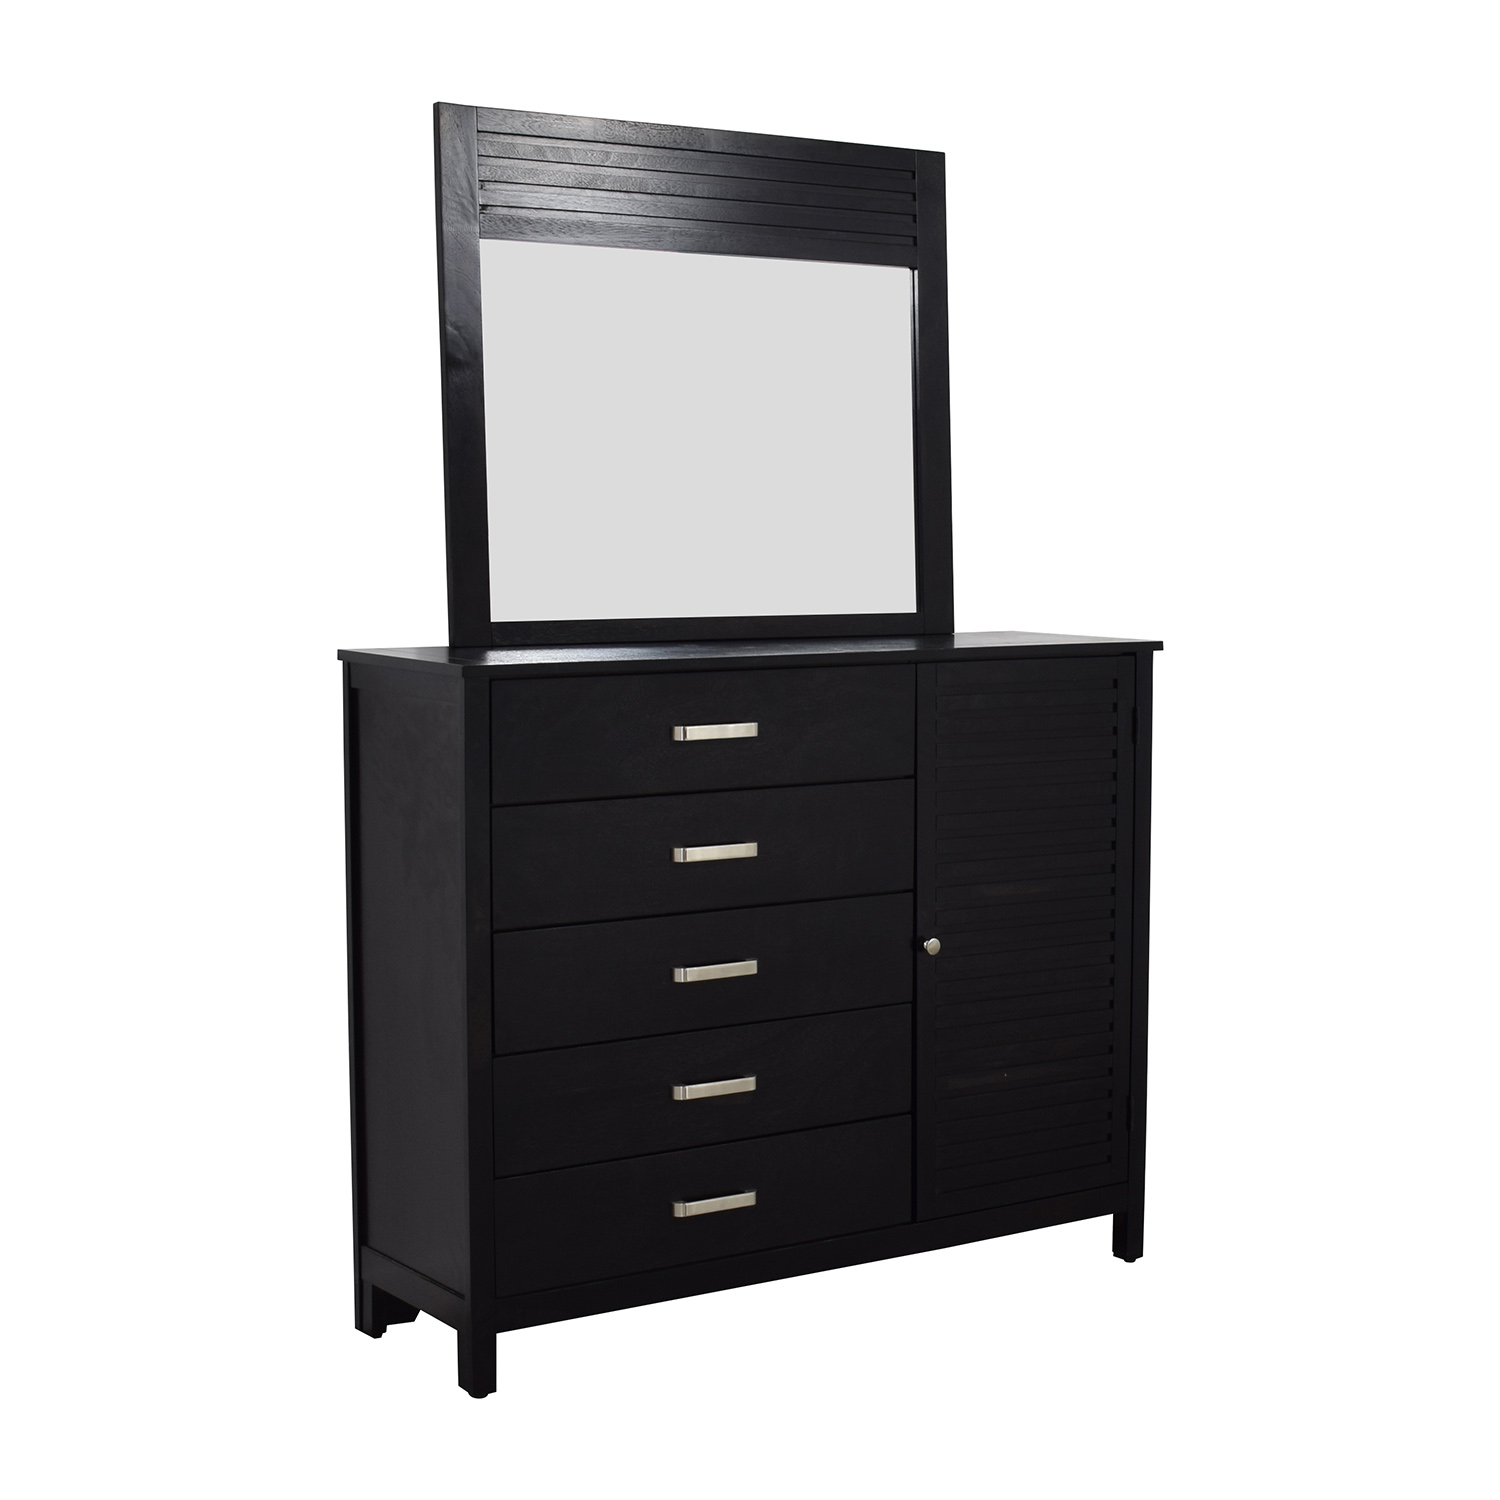 ... Shop Bobs Furniture Dalton Espresso Dresser And Mirror Bobs Furniture  ...